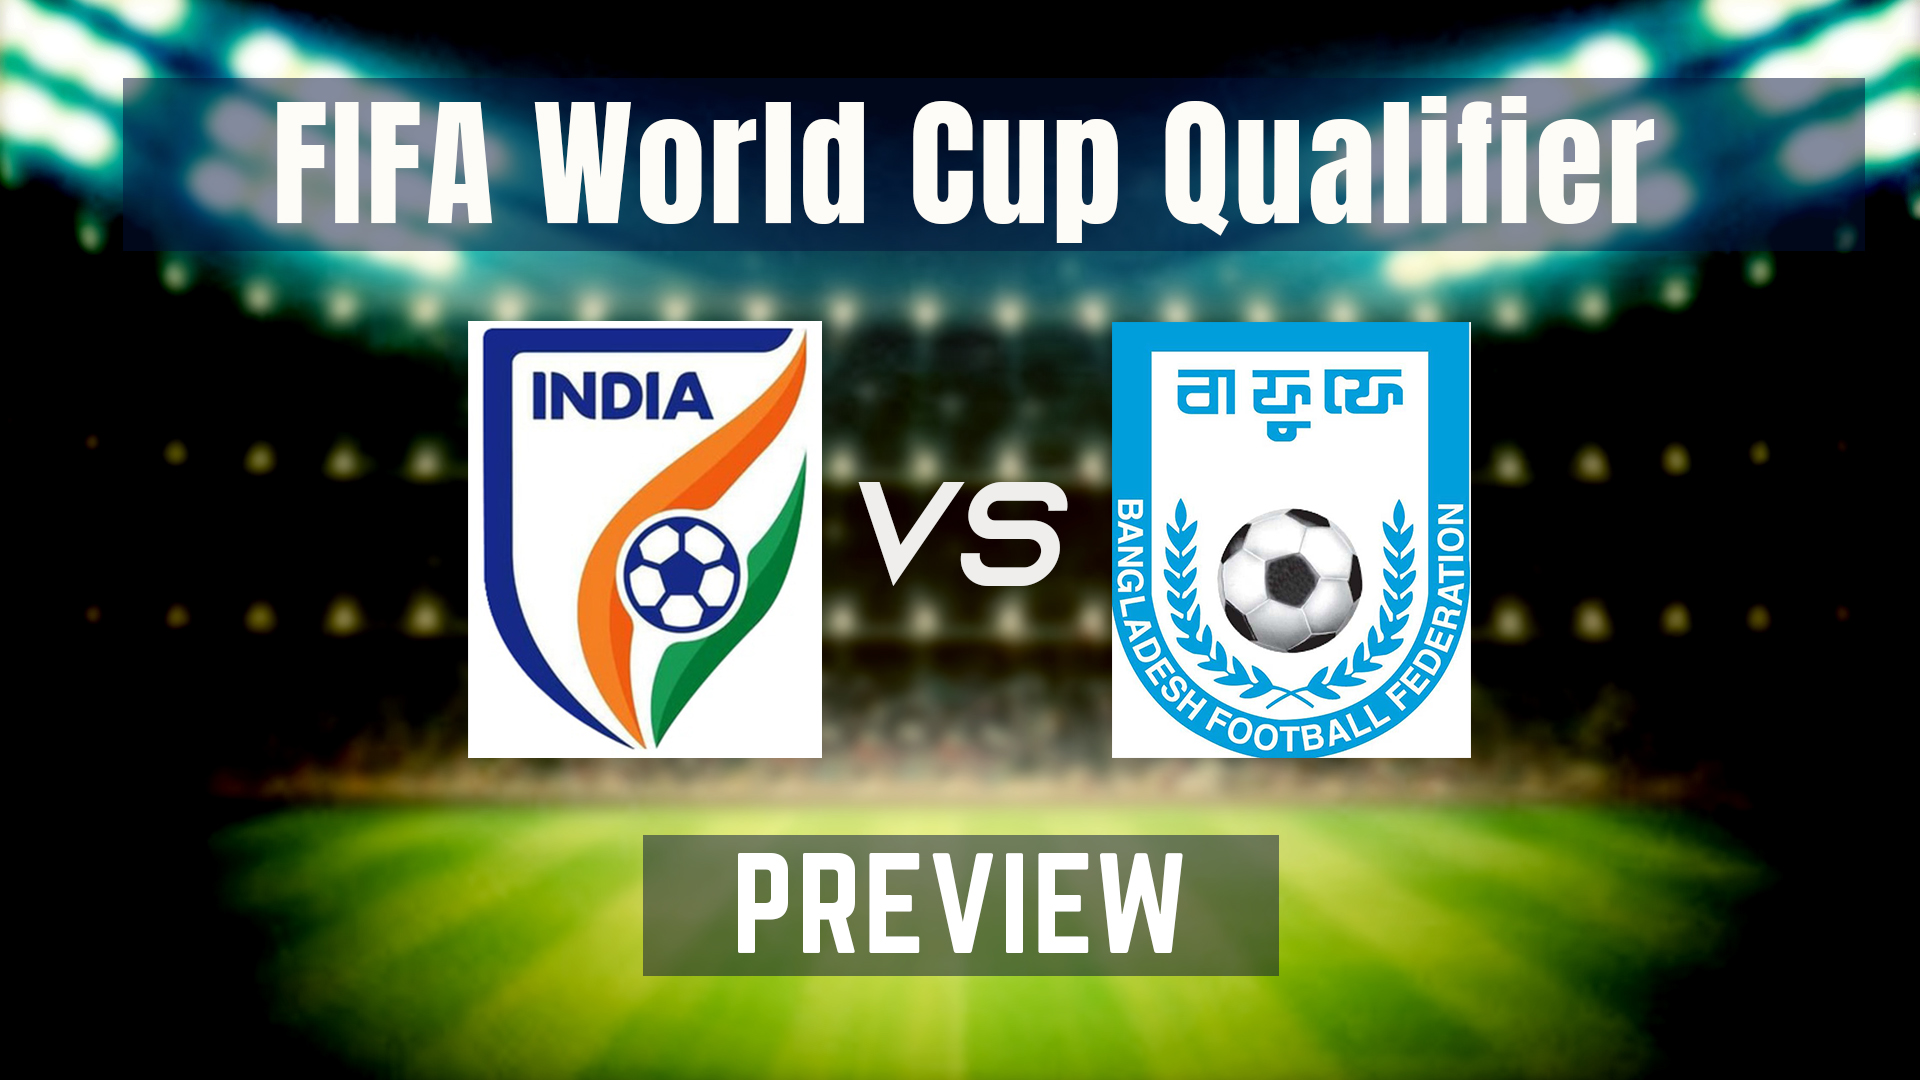 India vs Bangladesh FIFA World Cup qualifier preview